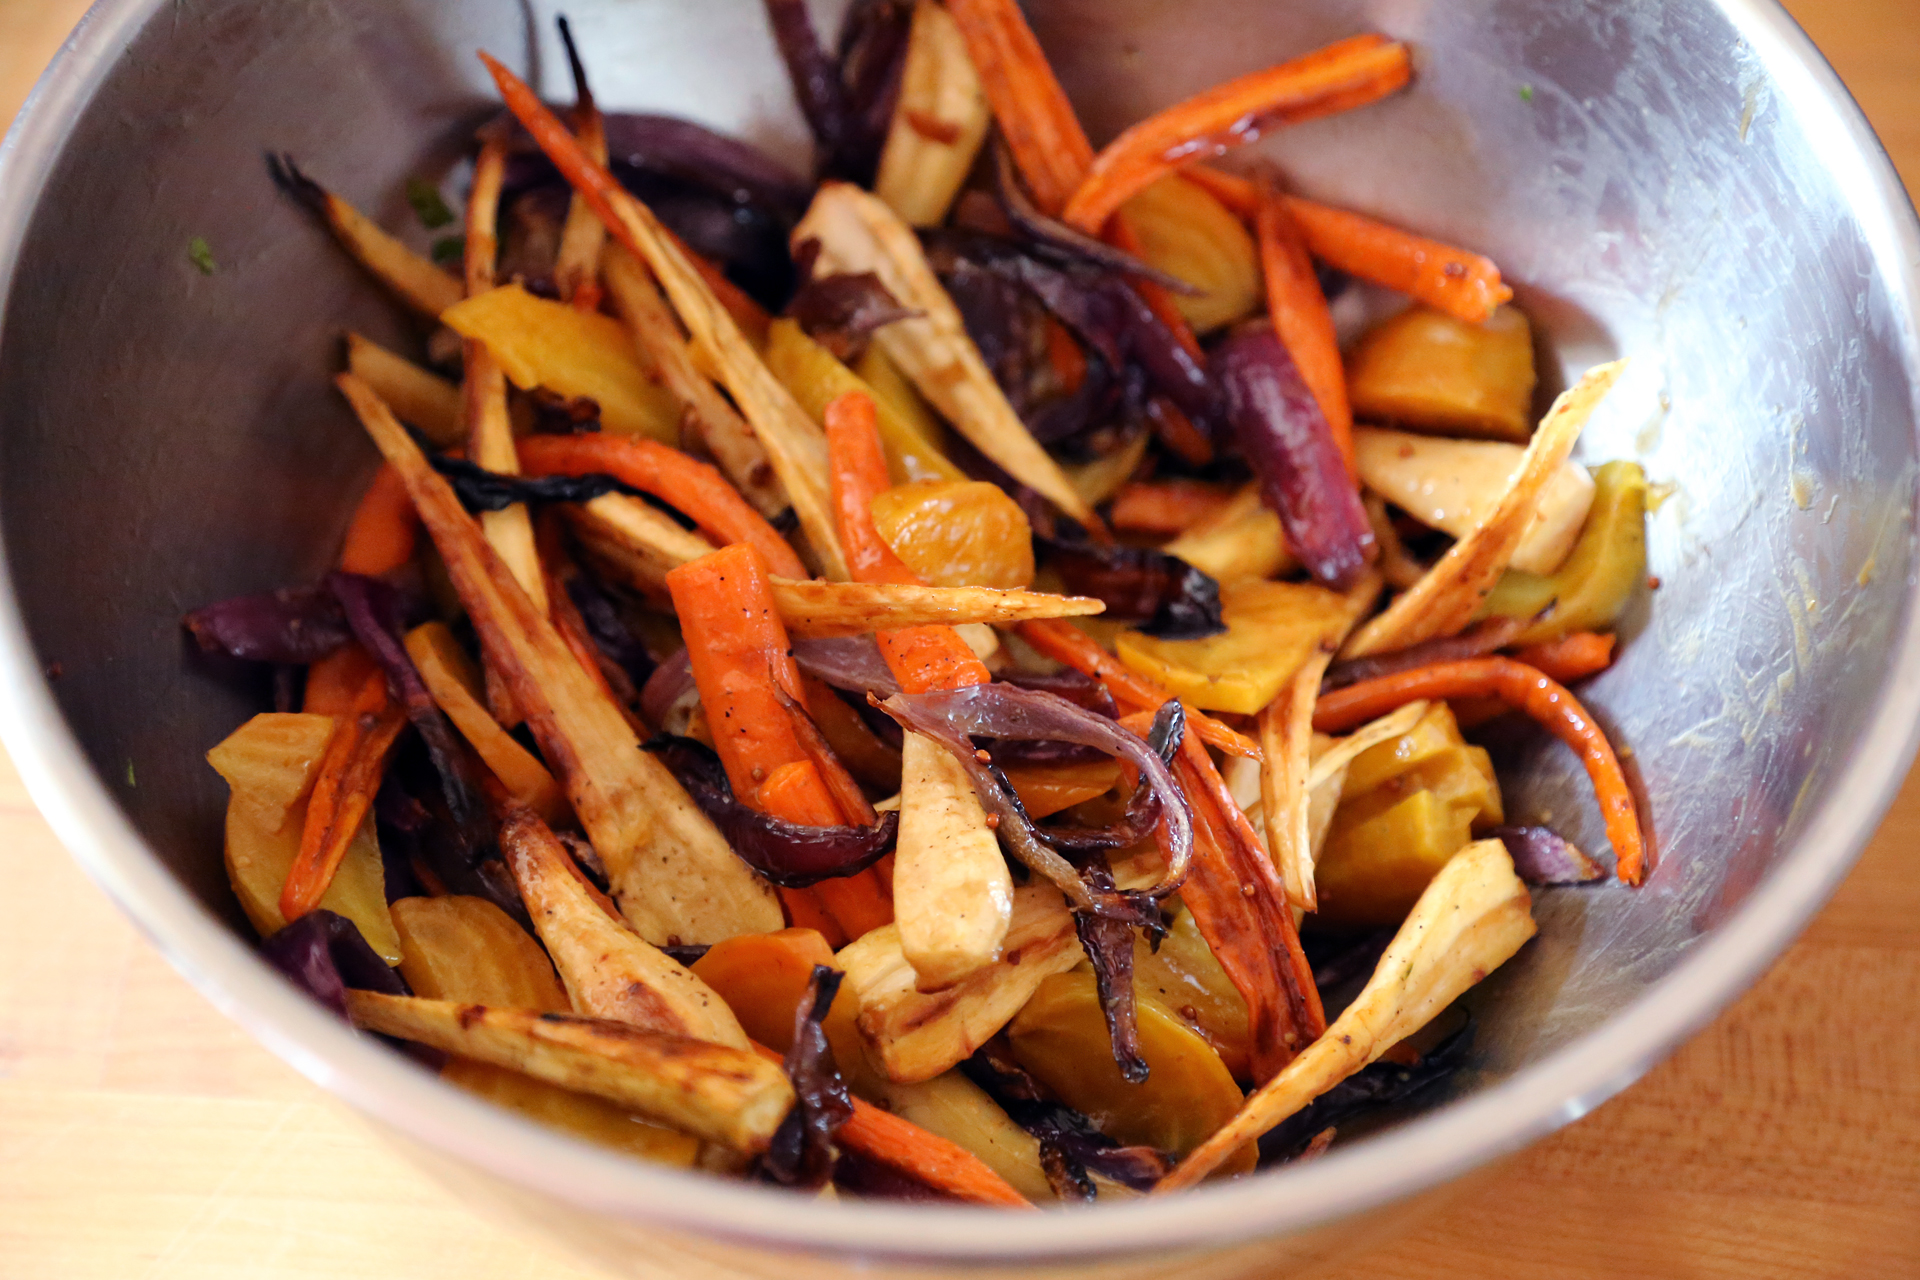 Add the roasted vegetables to the mixing bowl and toss with 2 tbsp vinaigrette.